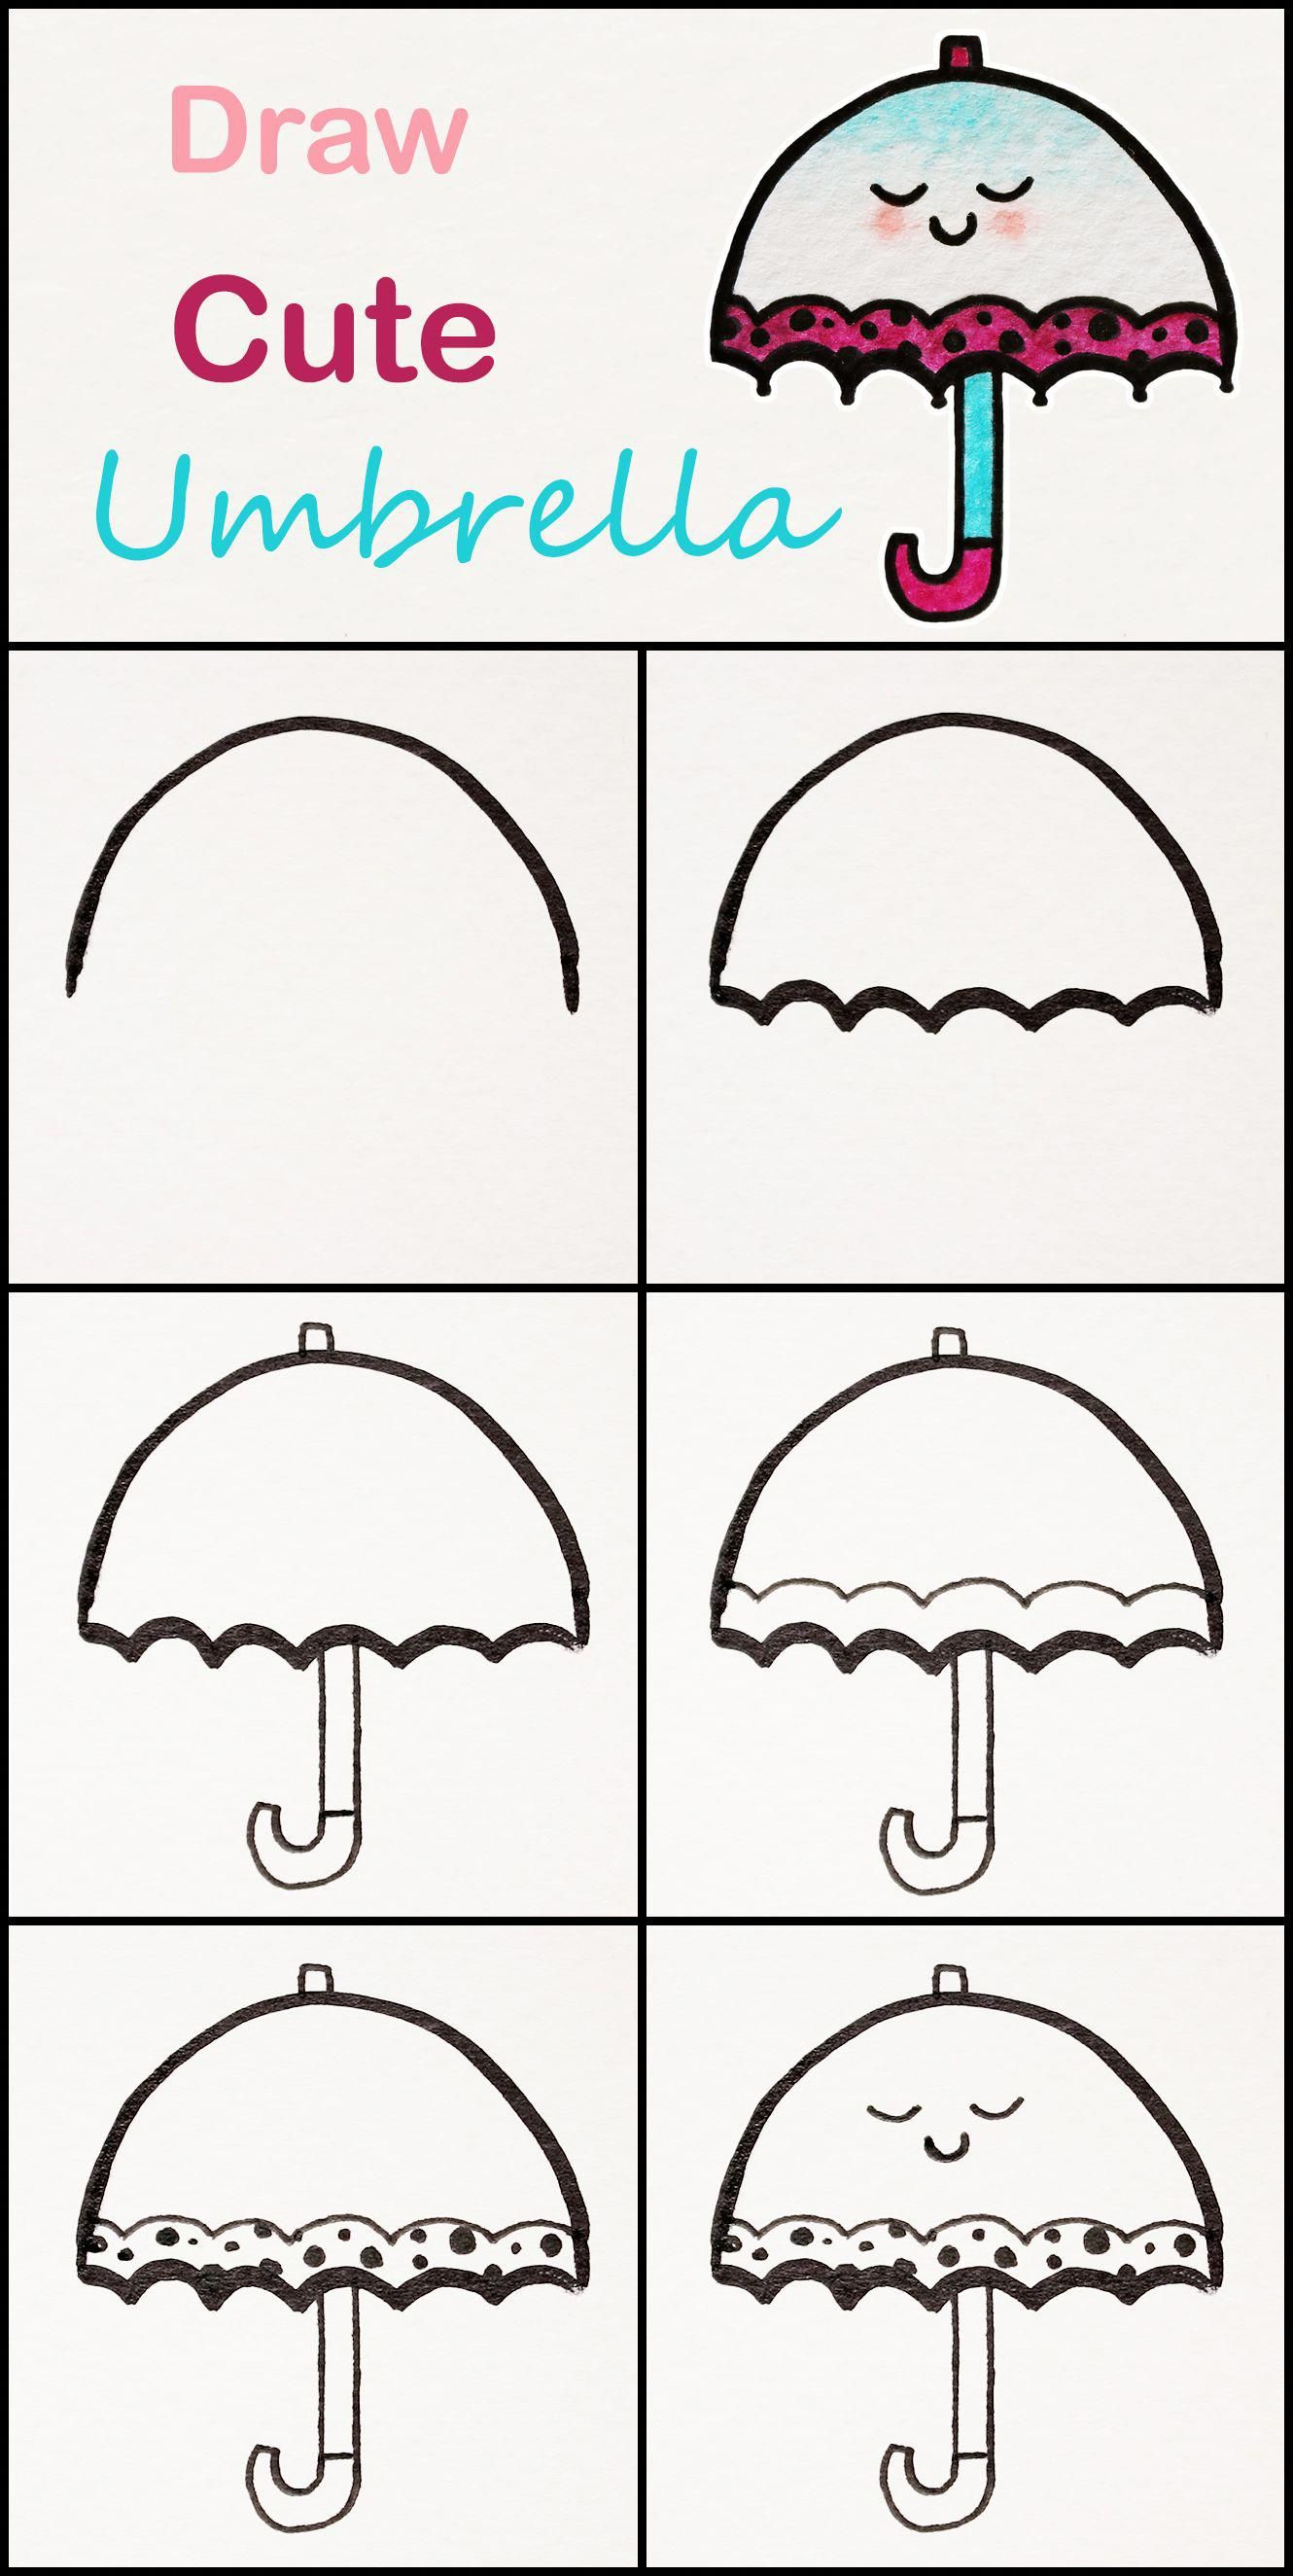 Step By Step Easy And Simple Art Video Lessons For Kids74918018117892 Cute Umbrellas Cute Easy Drawings Easy Drawings